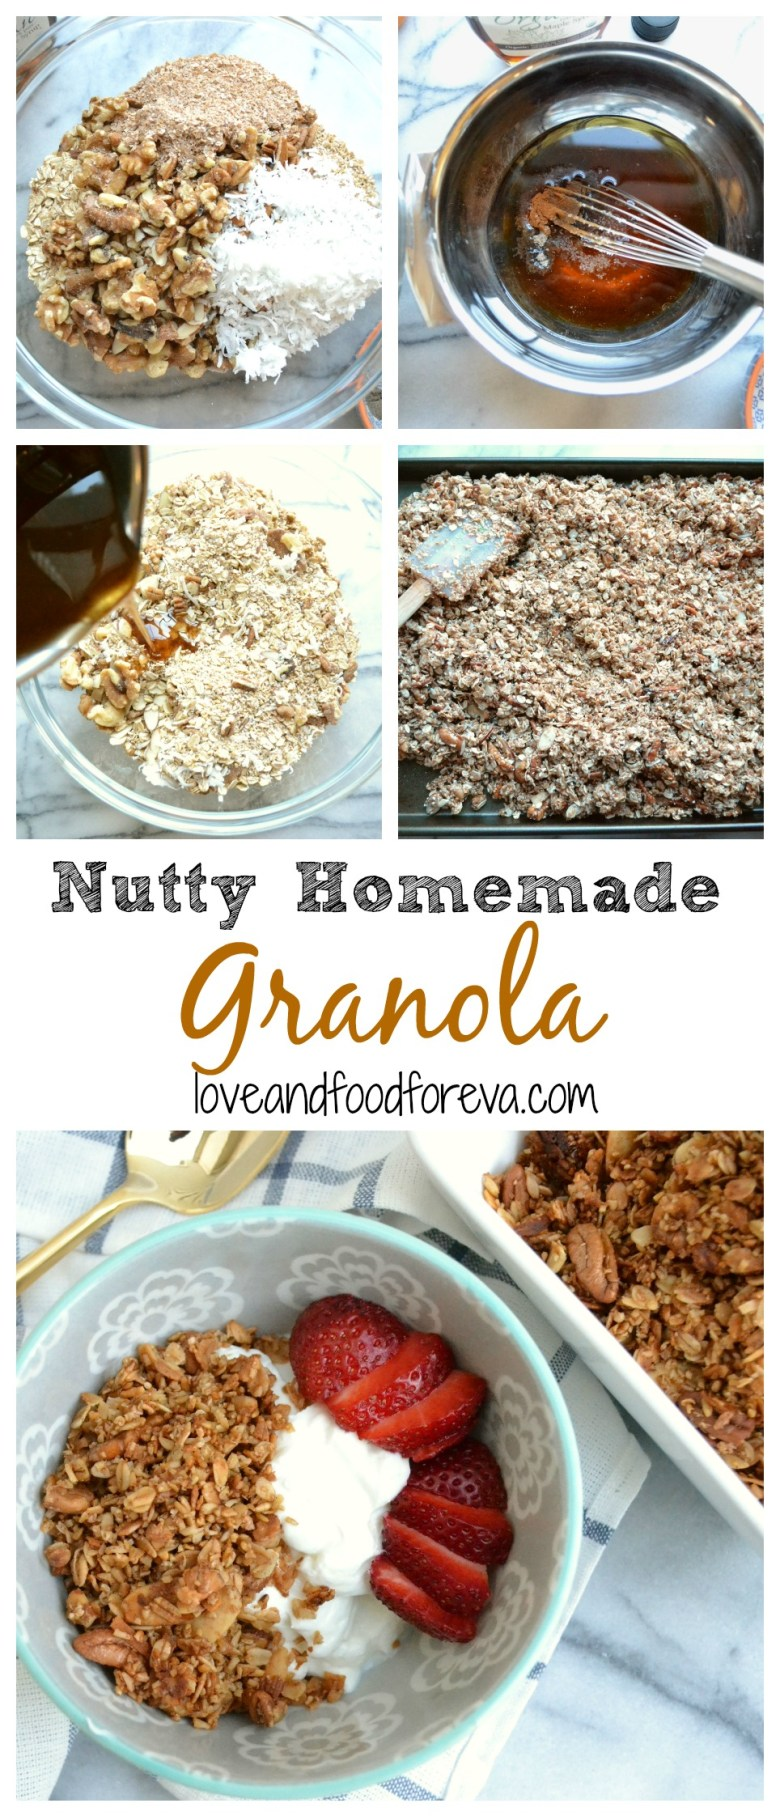 Nutty Homemade Granola - perfect for breakfast, snacks, or dessert!